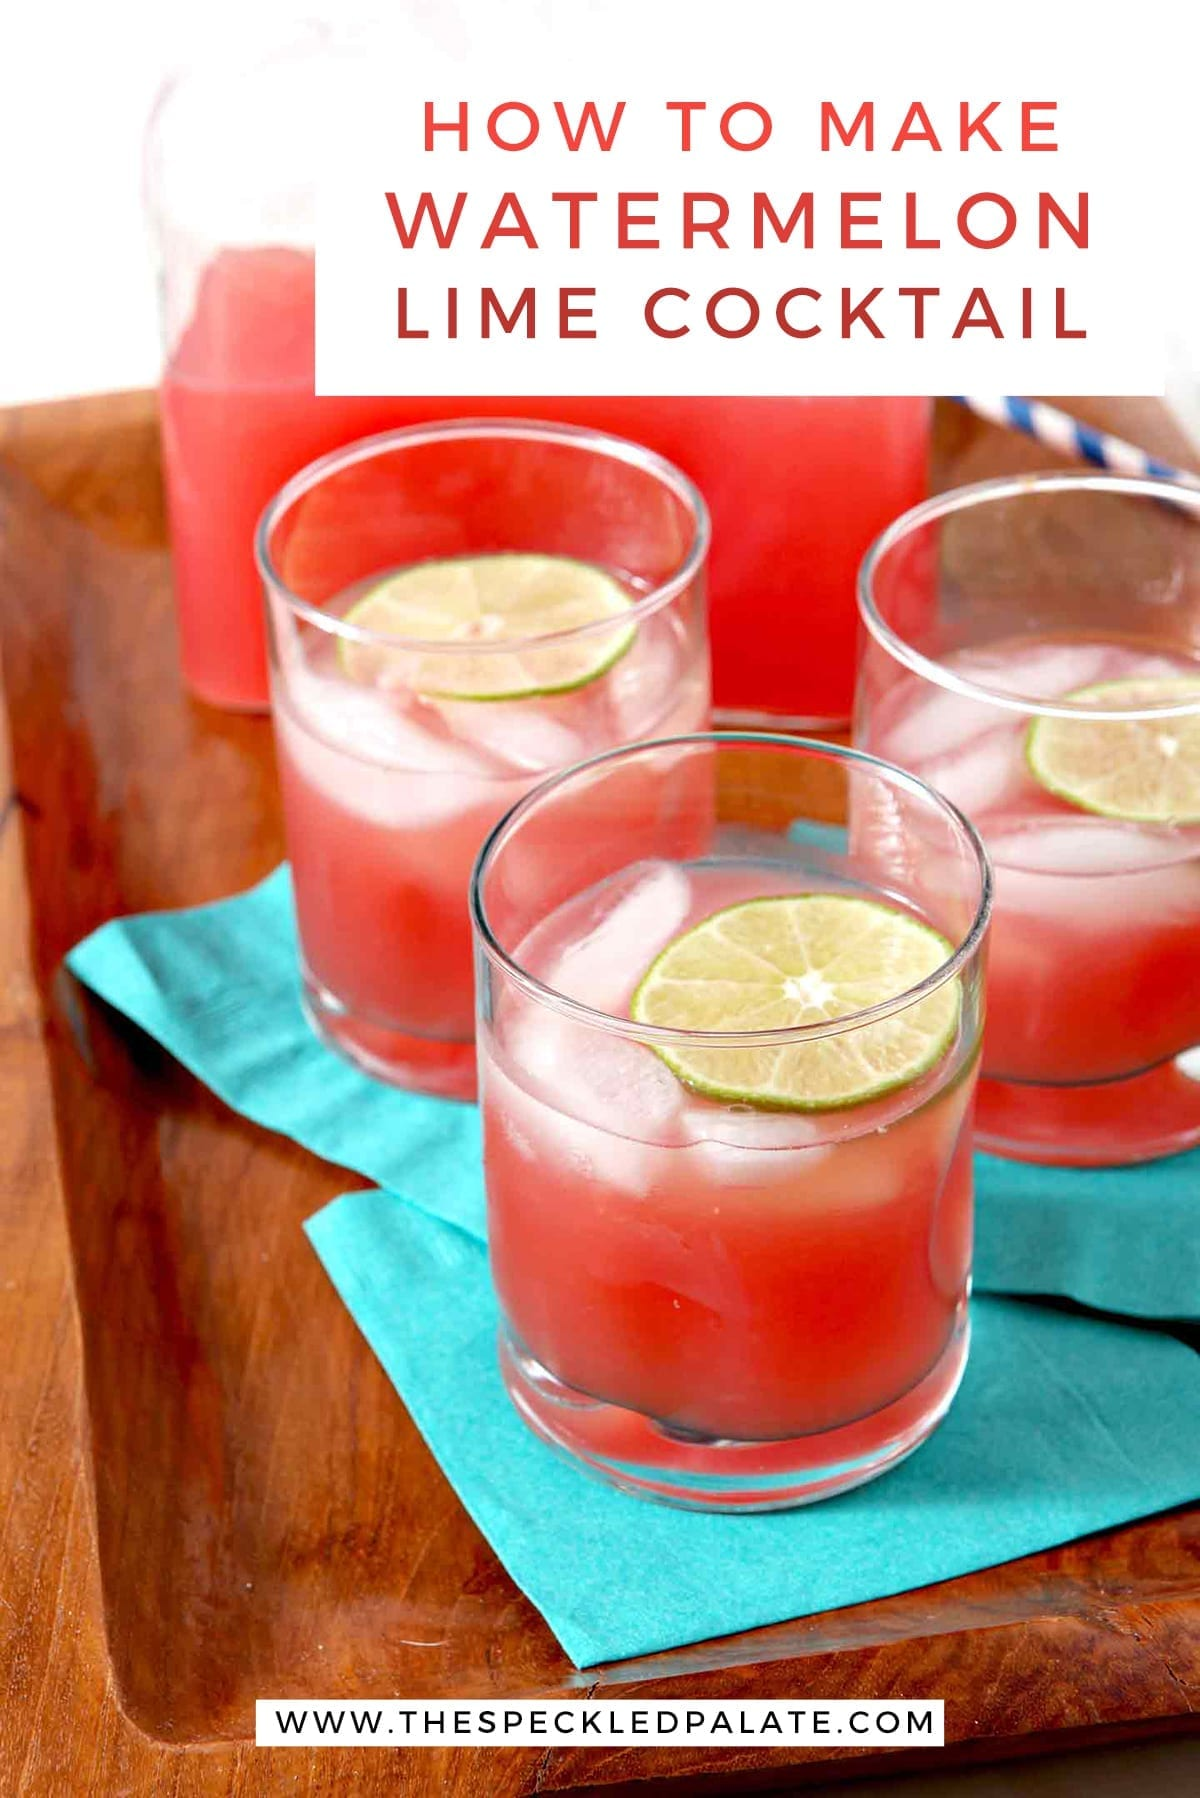 A wooden tray holds three small glasses of spiked watermelon limeade with the text 'how to make watermelon lime cocktail'